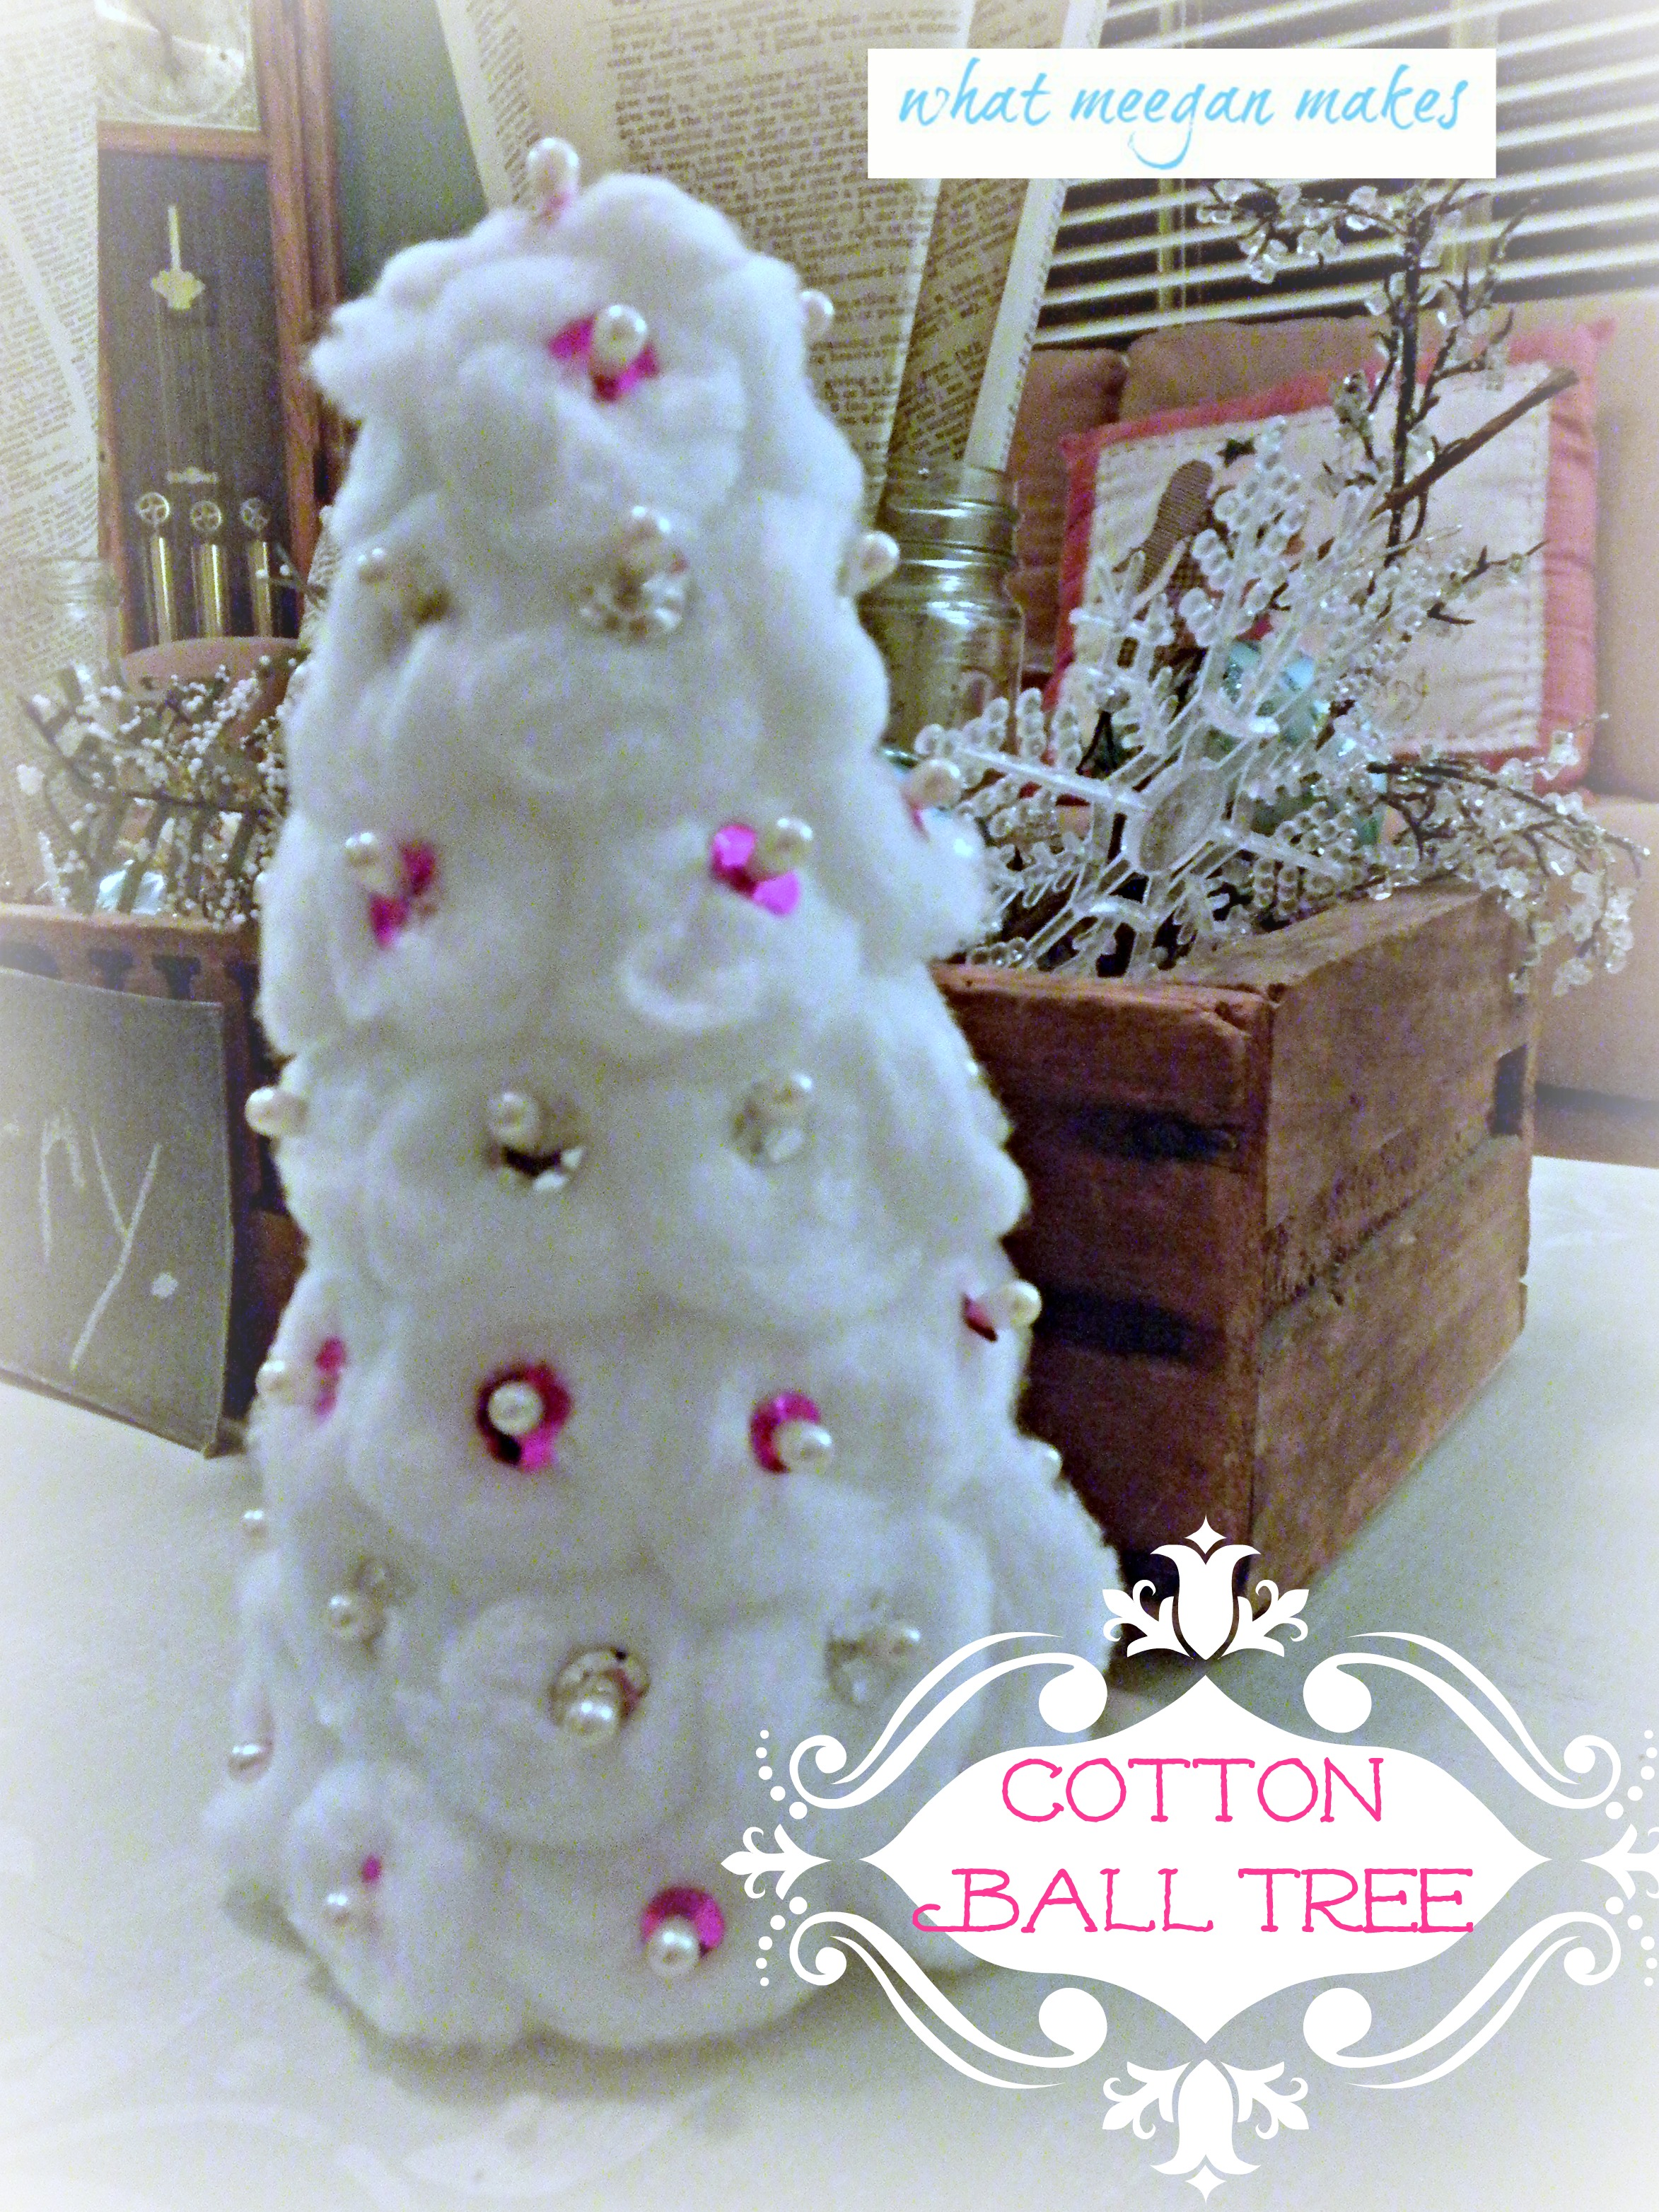 Cotton ball christmas trees - Cotton ballspractical ideas ...